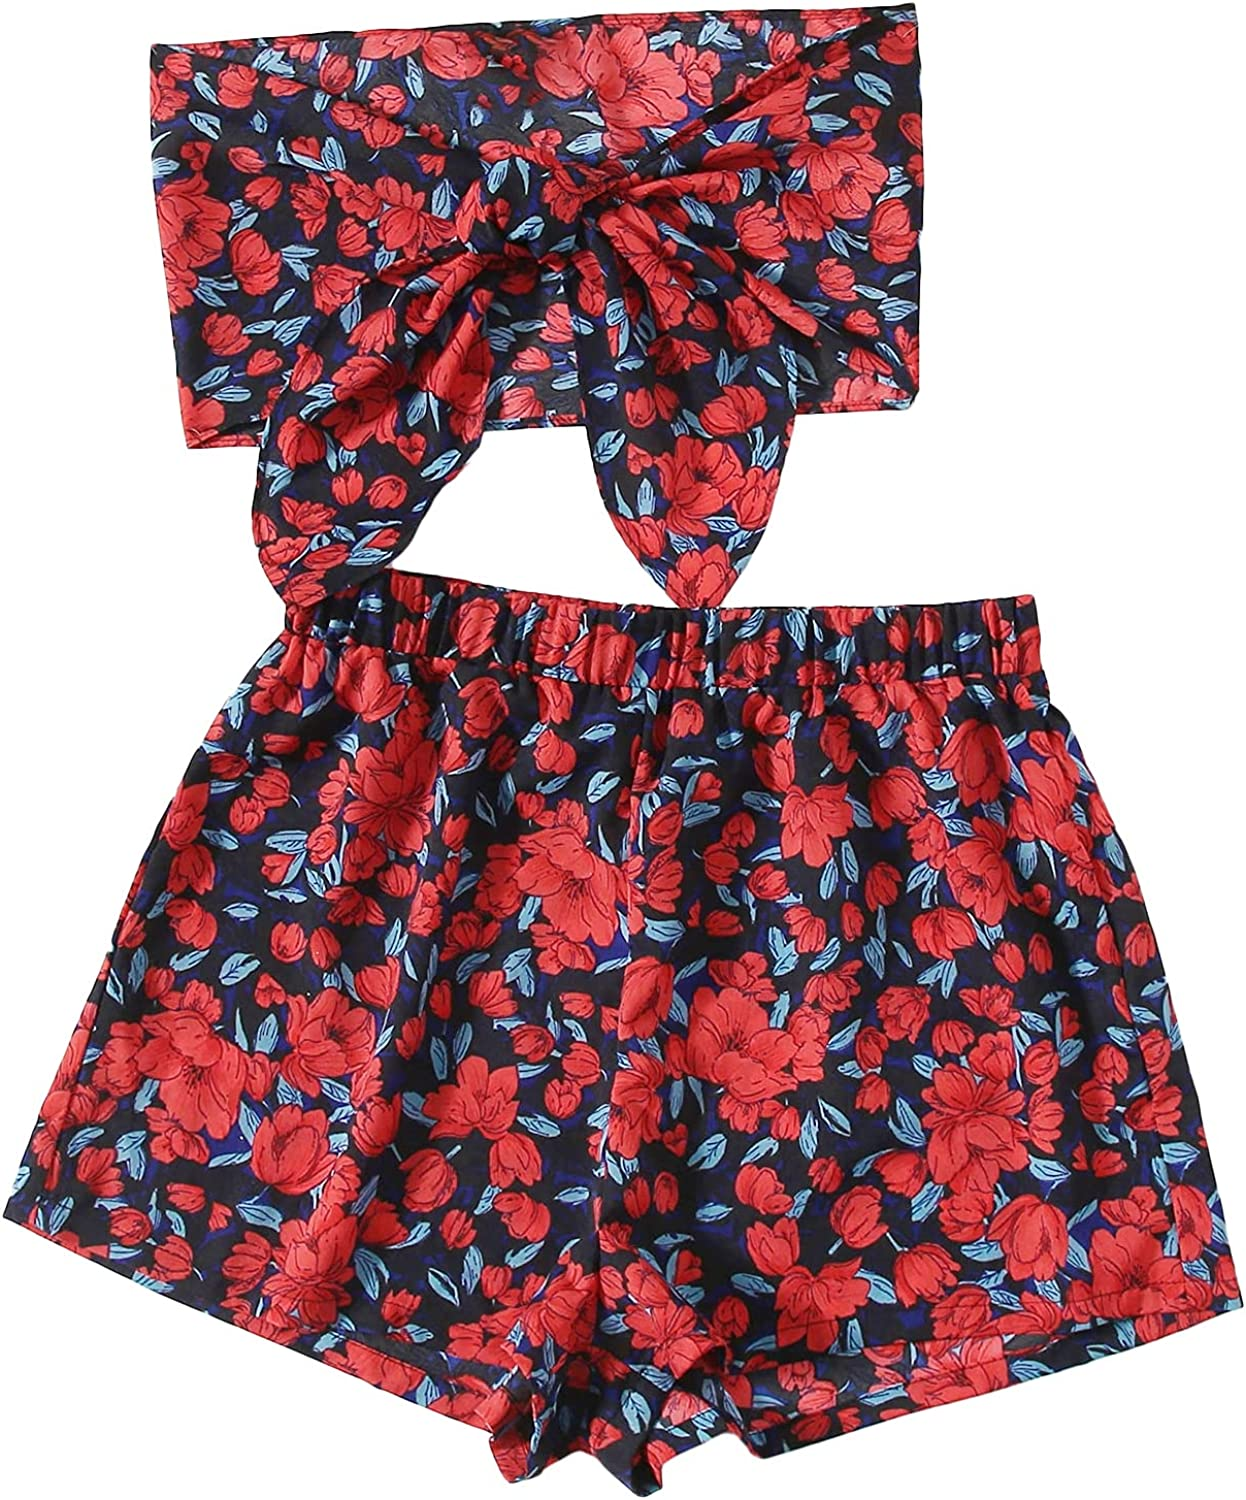 SheIn Women's Plus Boho Strapless Bandeau Tie Front Crop Top and Shorts Set